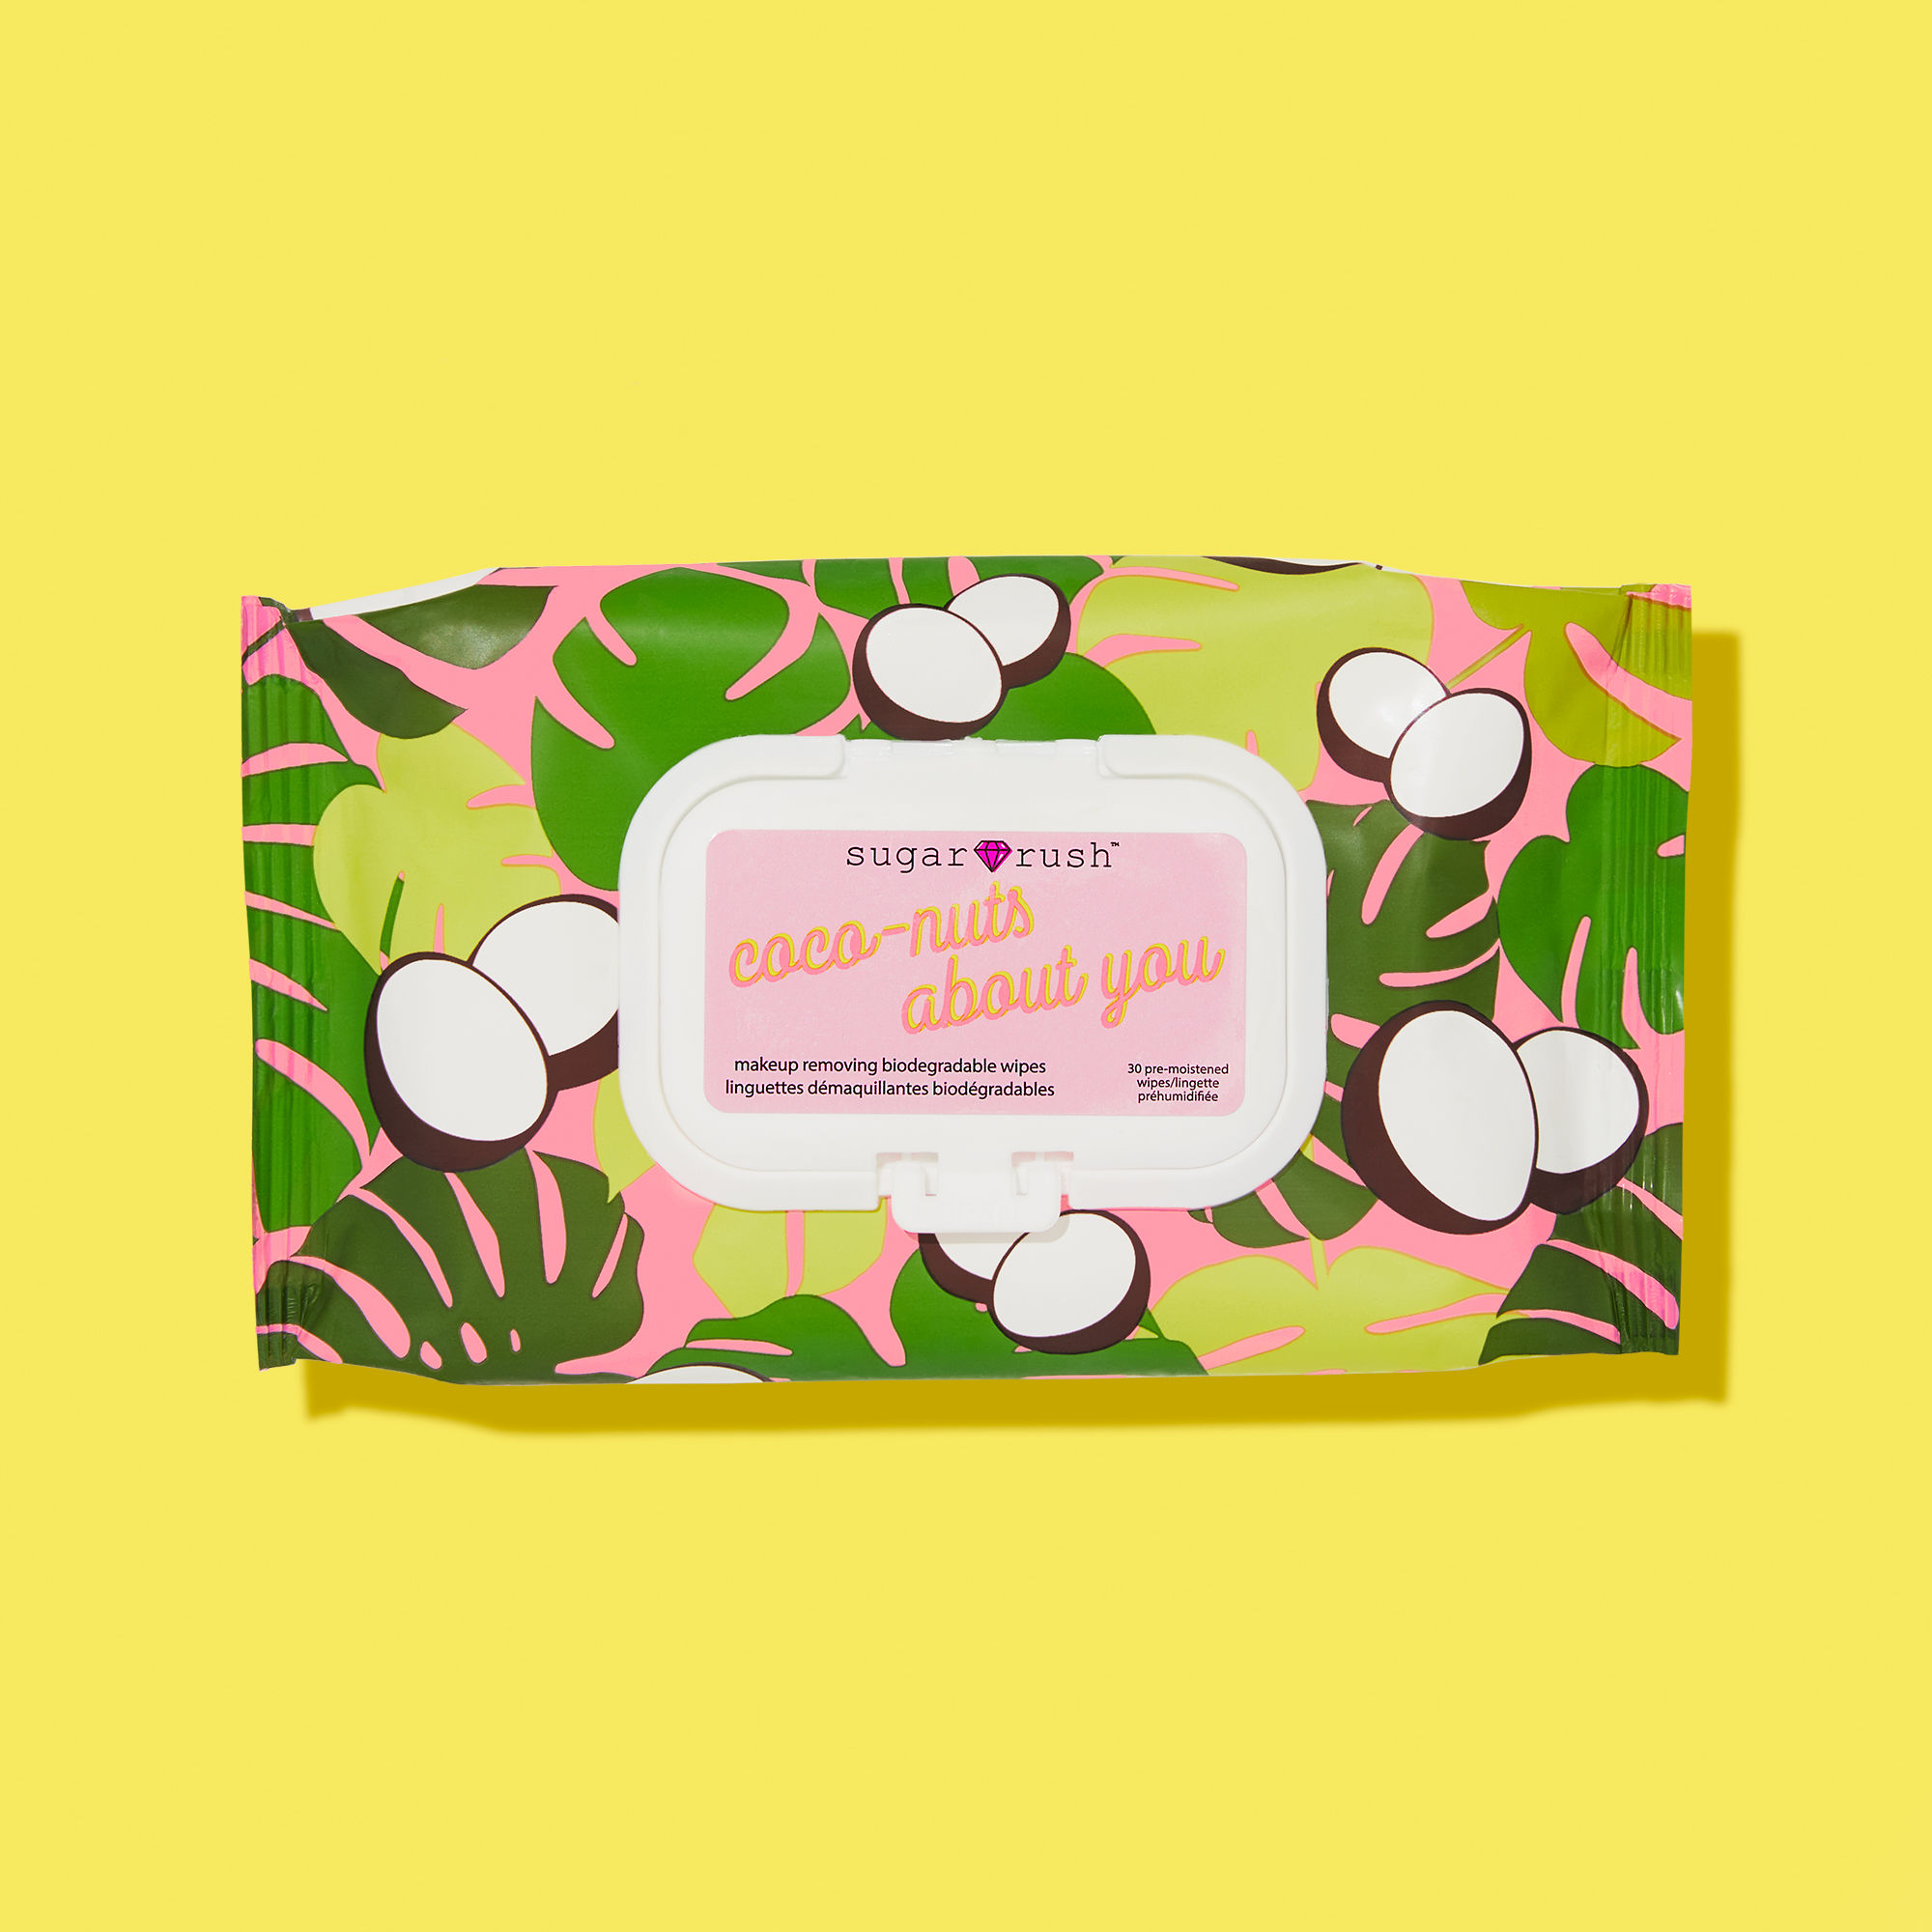 5039-sgr-coco-nuts-about-you-makeup-remover-wipes-main-img-main.jpg